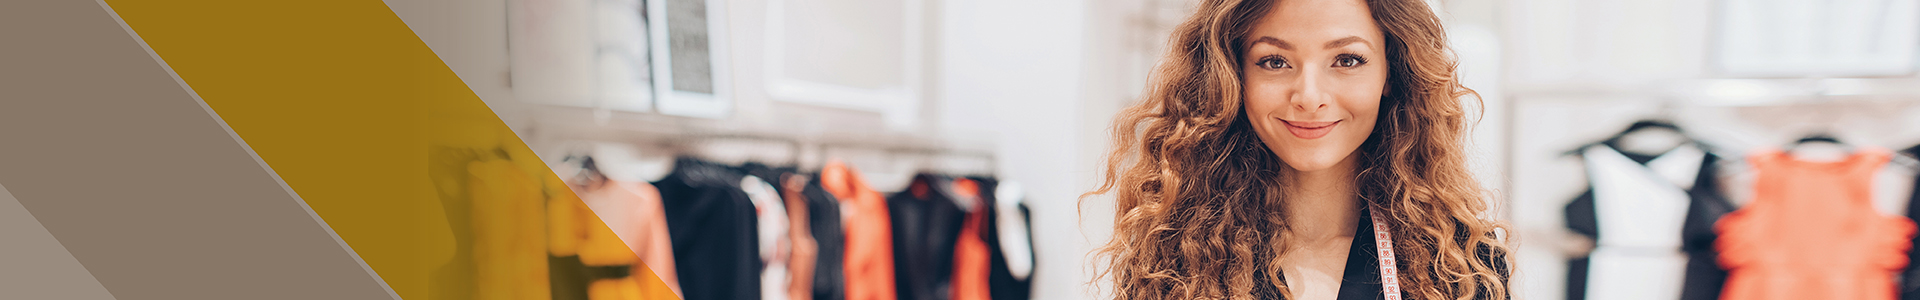 Connect with the retail c-suite